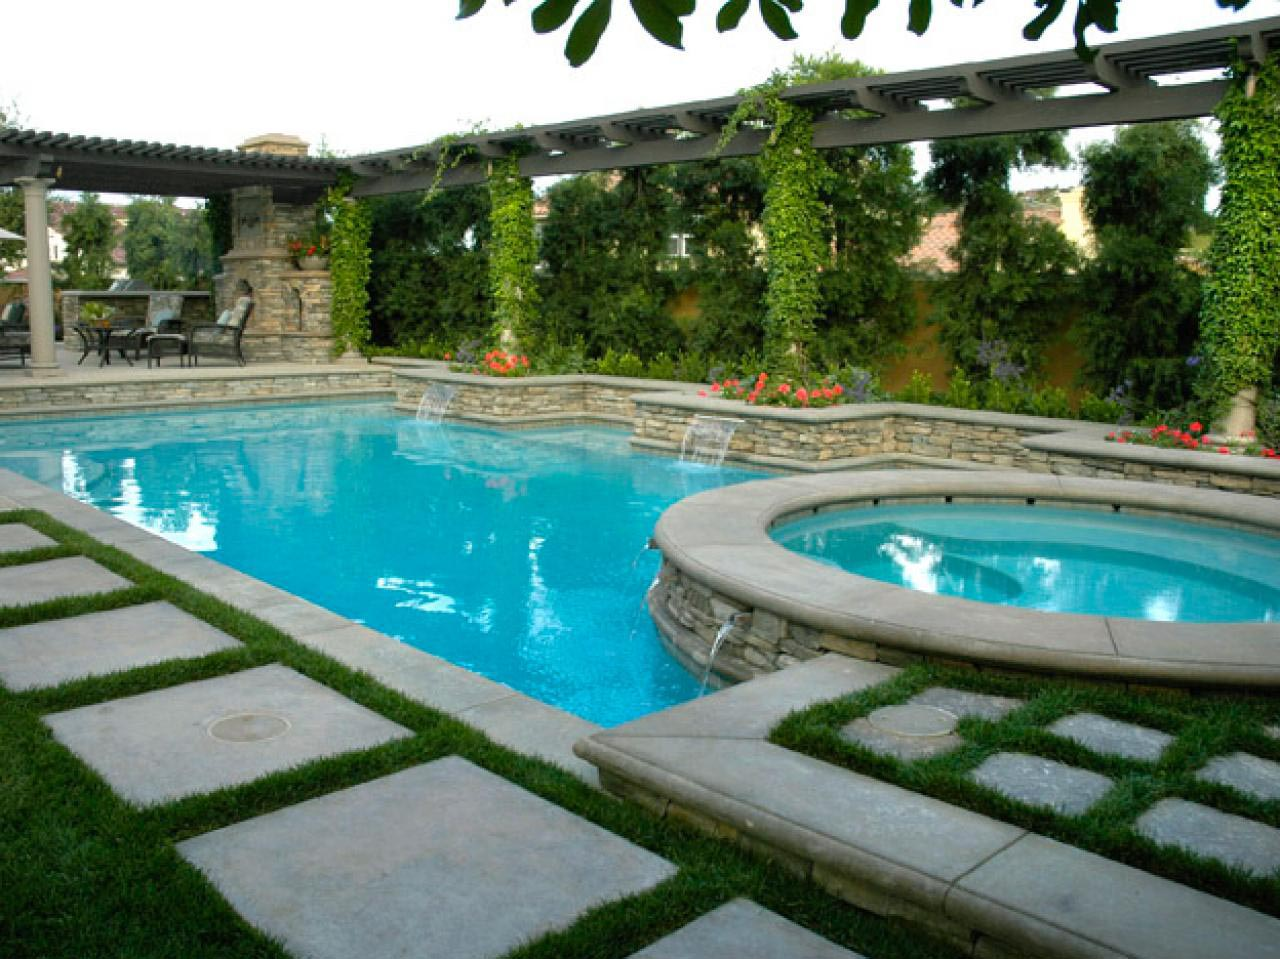 Diy water feature about everything backyard design ideas for Diy backyard pool landscaping